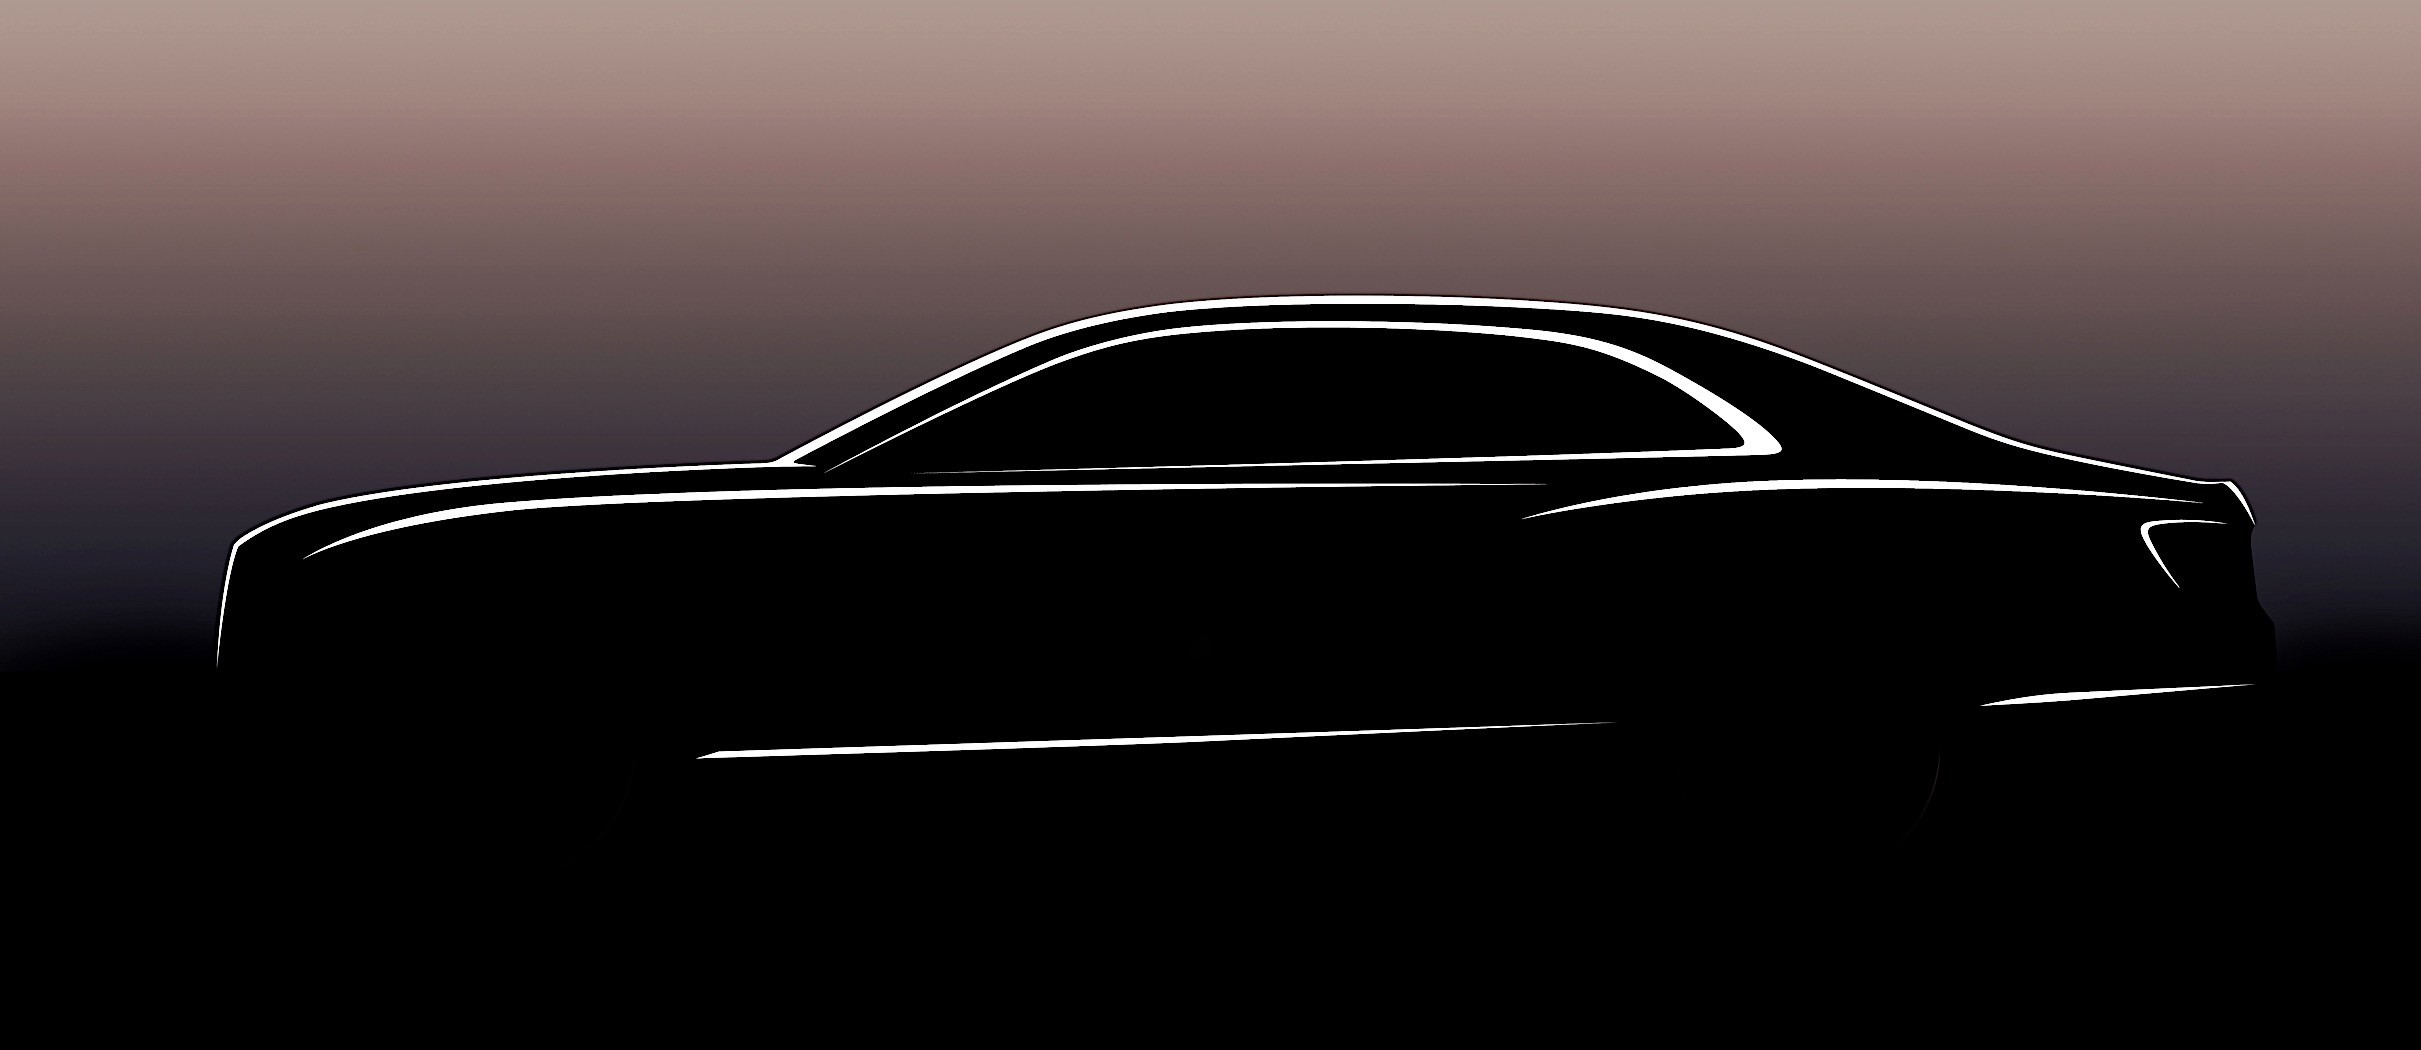 2020-bentley-flying-spur-shows-emblem-and-silhouette-in-first-official-teasers_1